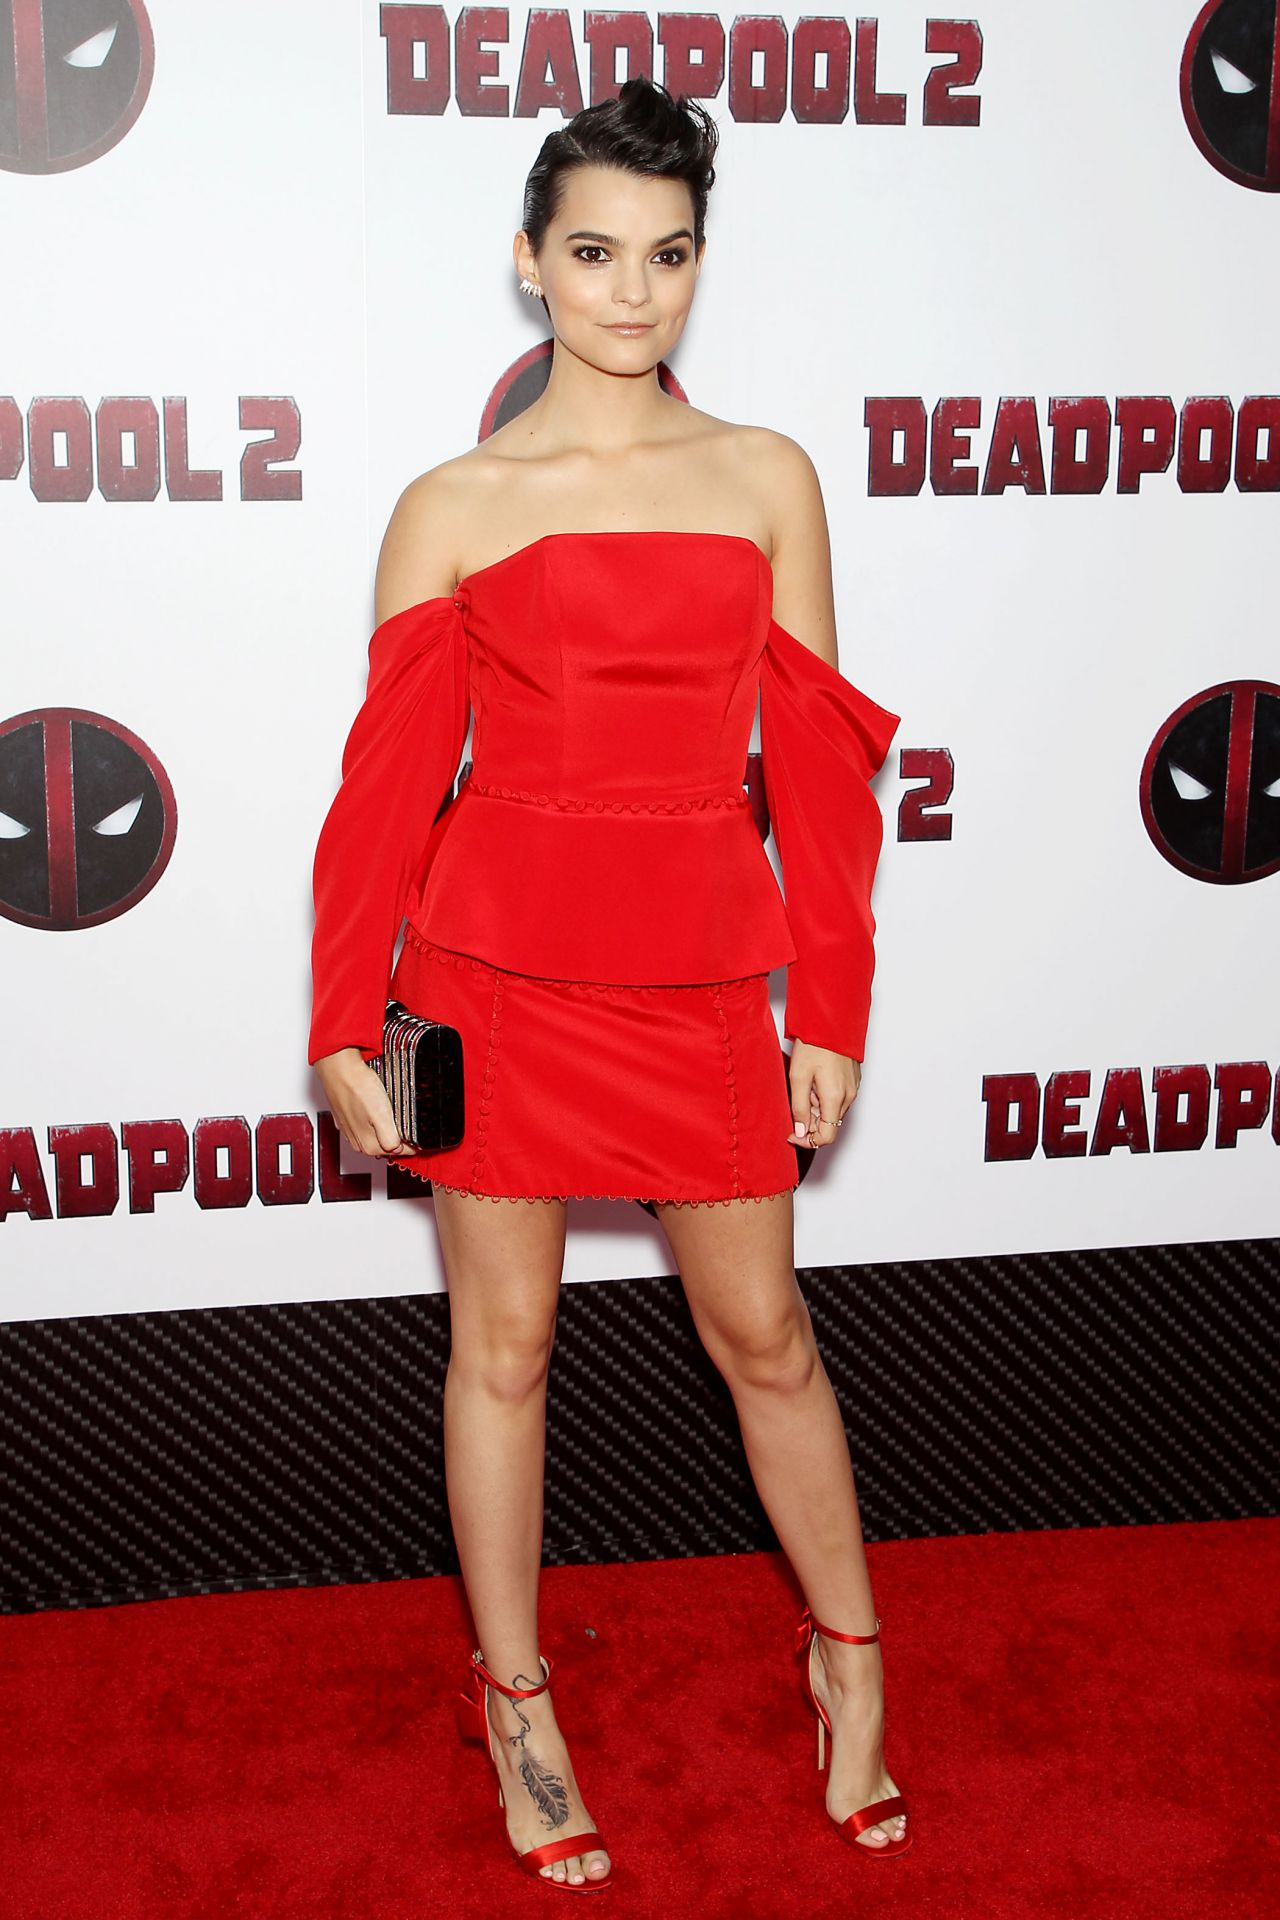 Brianna Hildebrand Deadpool 2 Special Screening In New